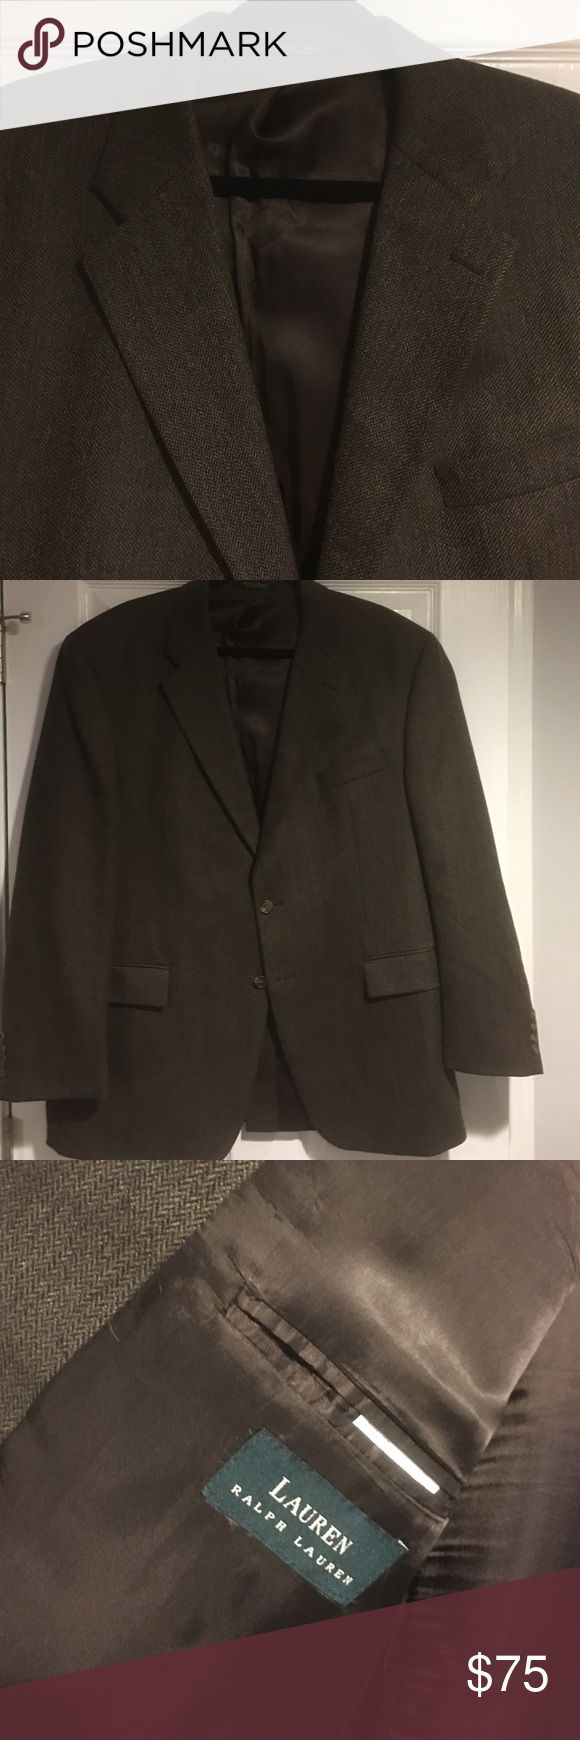 *Suit Sale* Lauren by RL 46R Brown sports jacket Made in Canada. High end. Great quality Lauren Ralph Lauren Suits & Blazers Sport Coats & Blazers